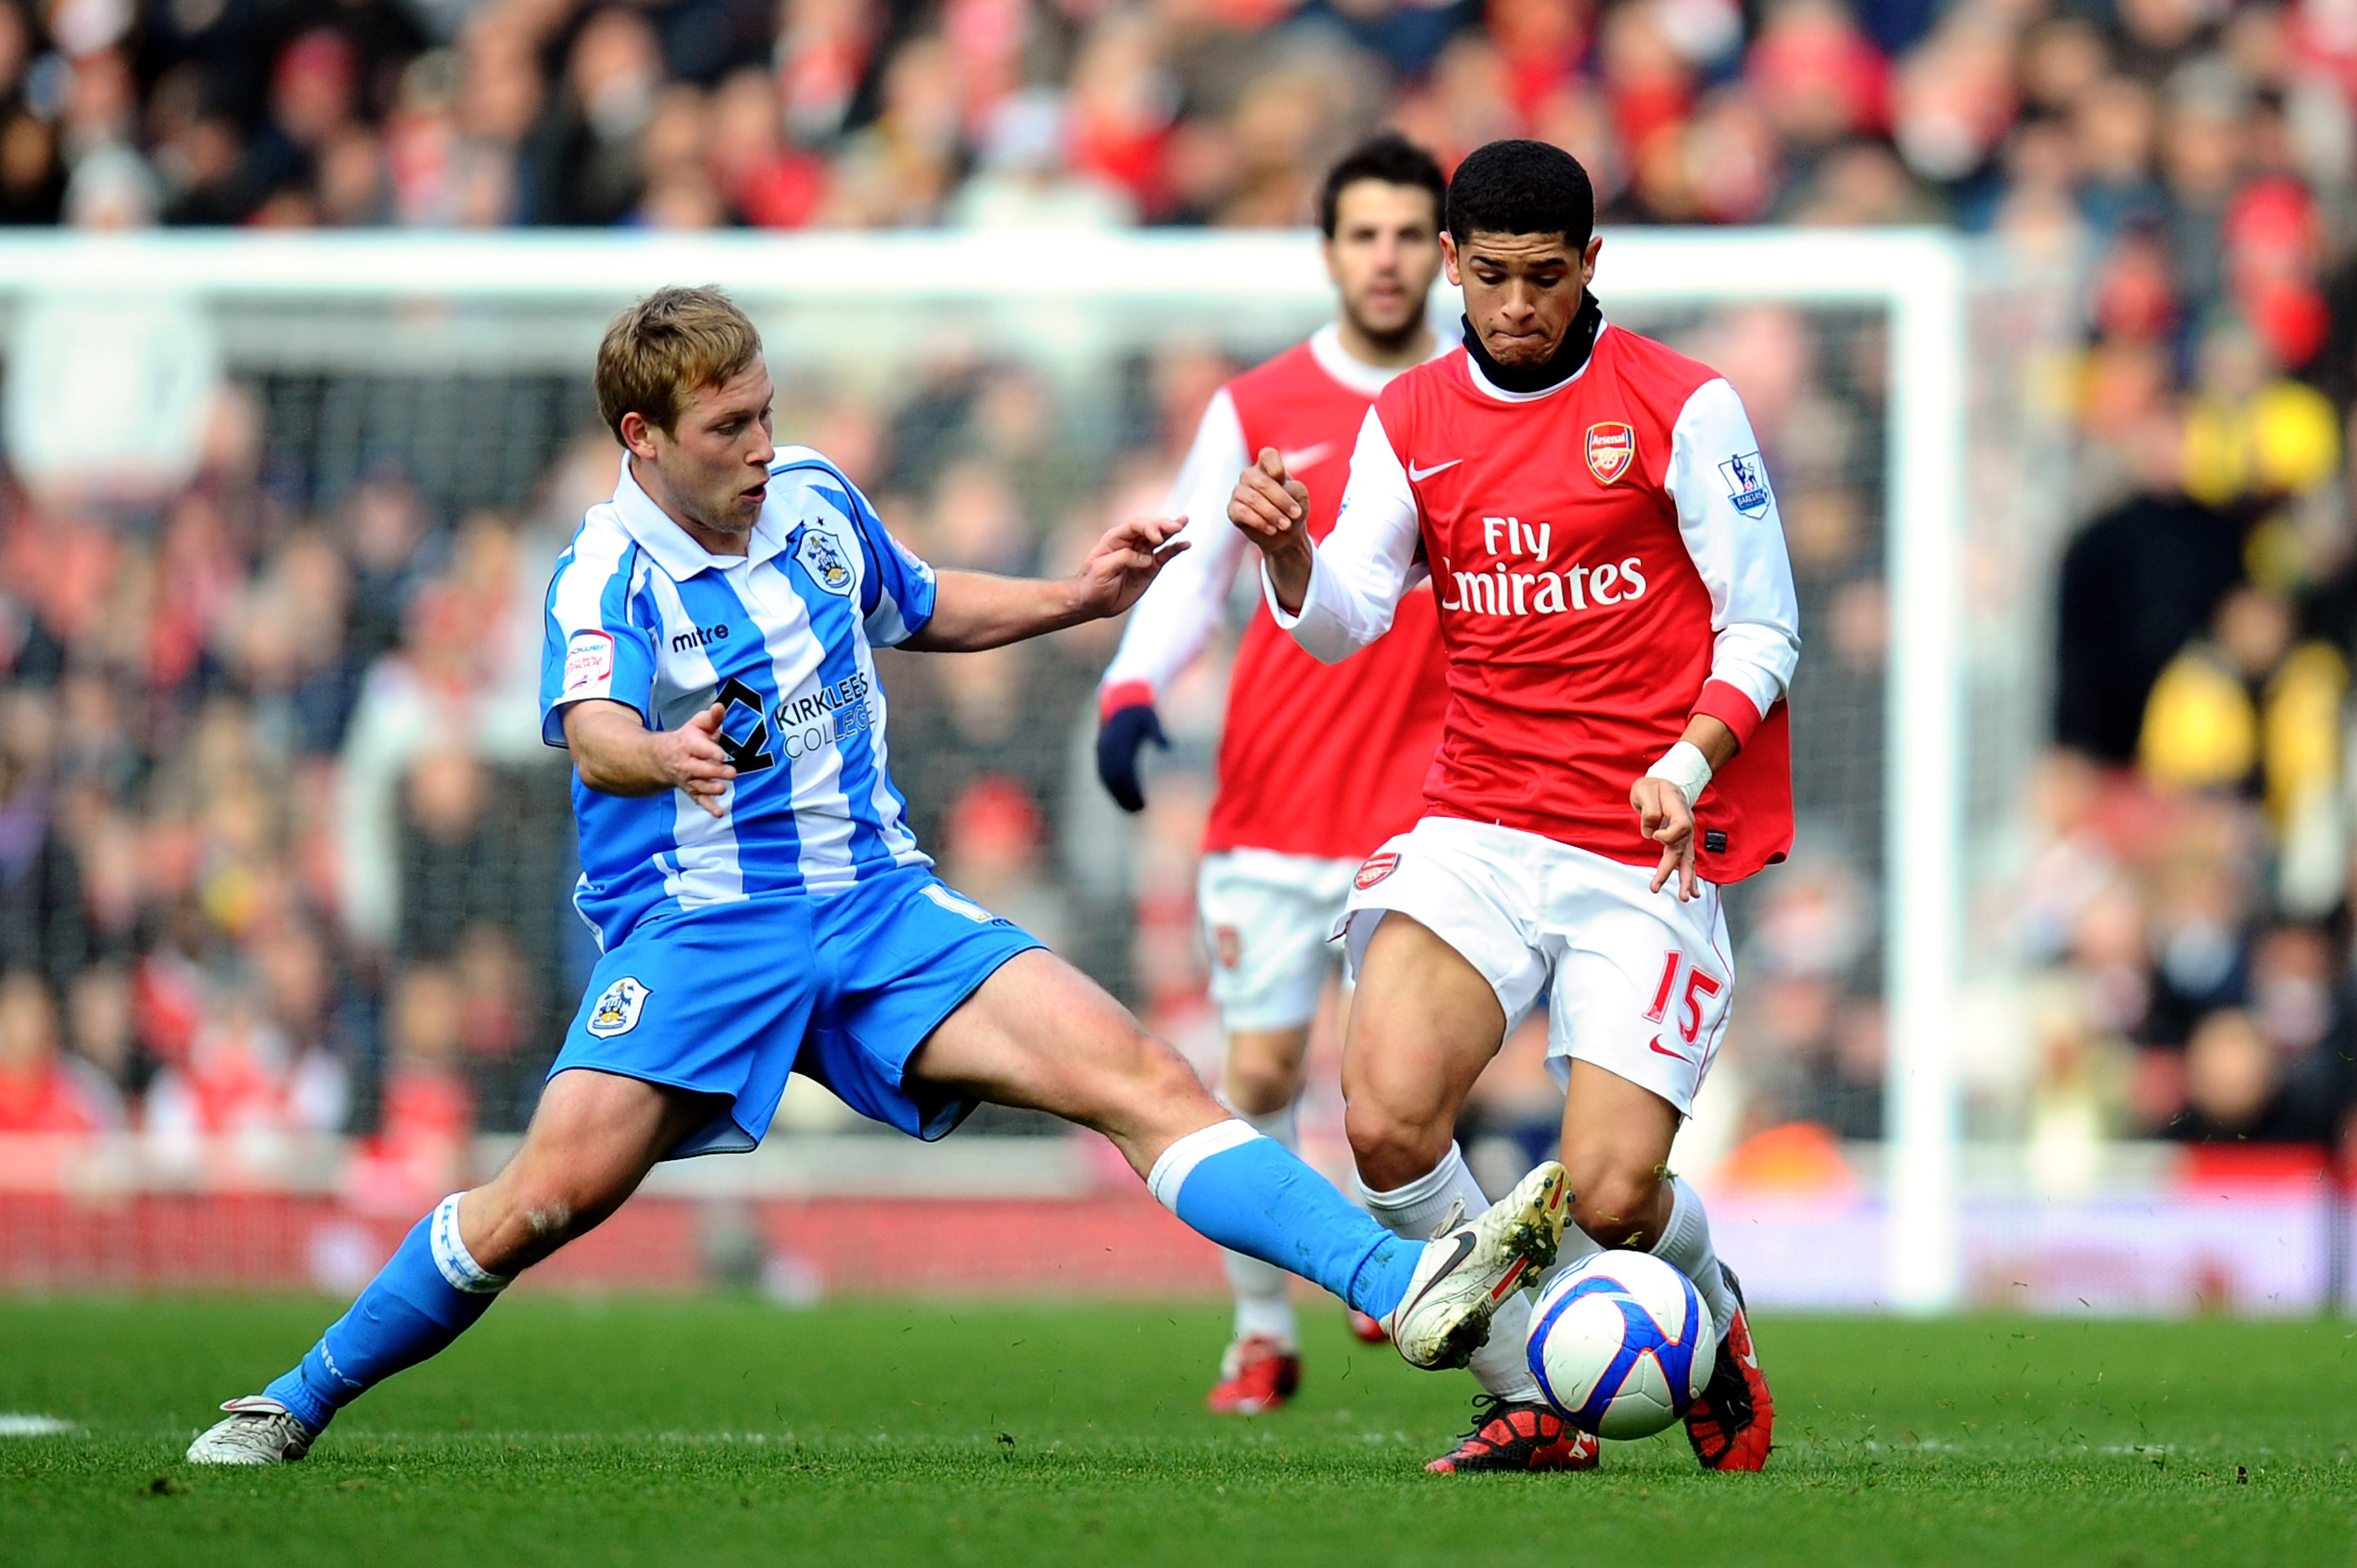 LONDON, ENGLAND - JANUARY 30:  Denilson of Arsenal is tackled by Scott Arfield of Huddersfield during the FA Cup sponsored by E.ON fourth round match between Arsenal and Huddersfield Town at The Emirates Stadium on January 30, 2011 in London, England.  (P